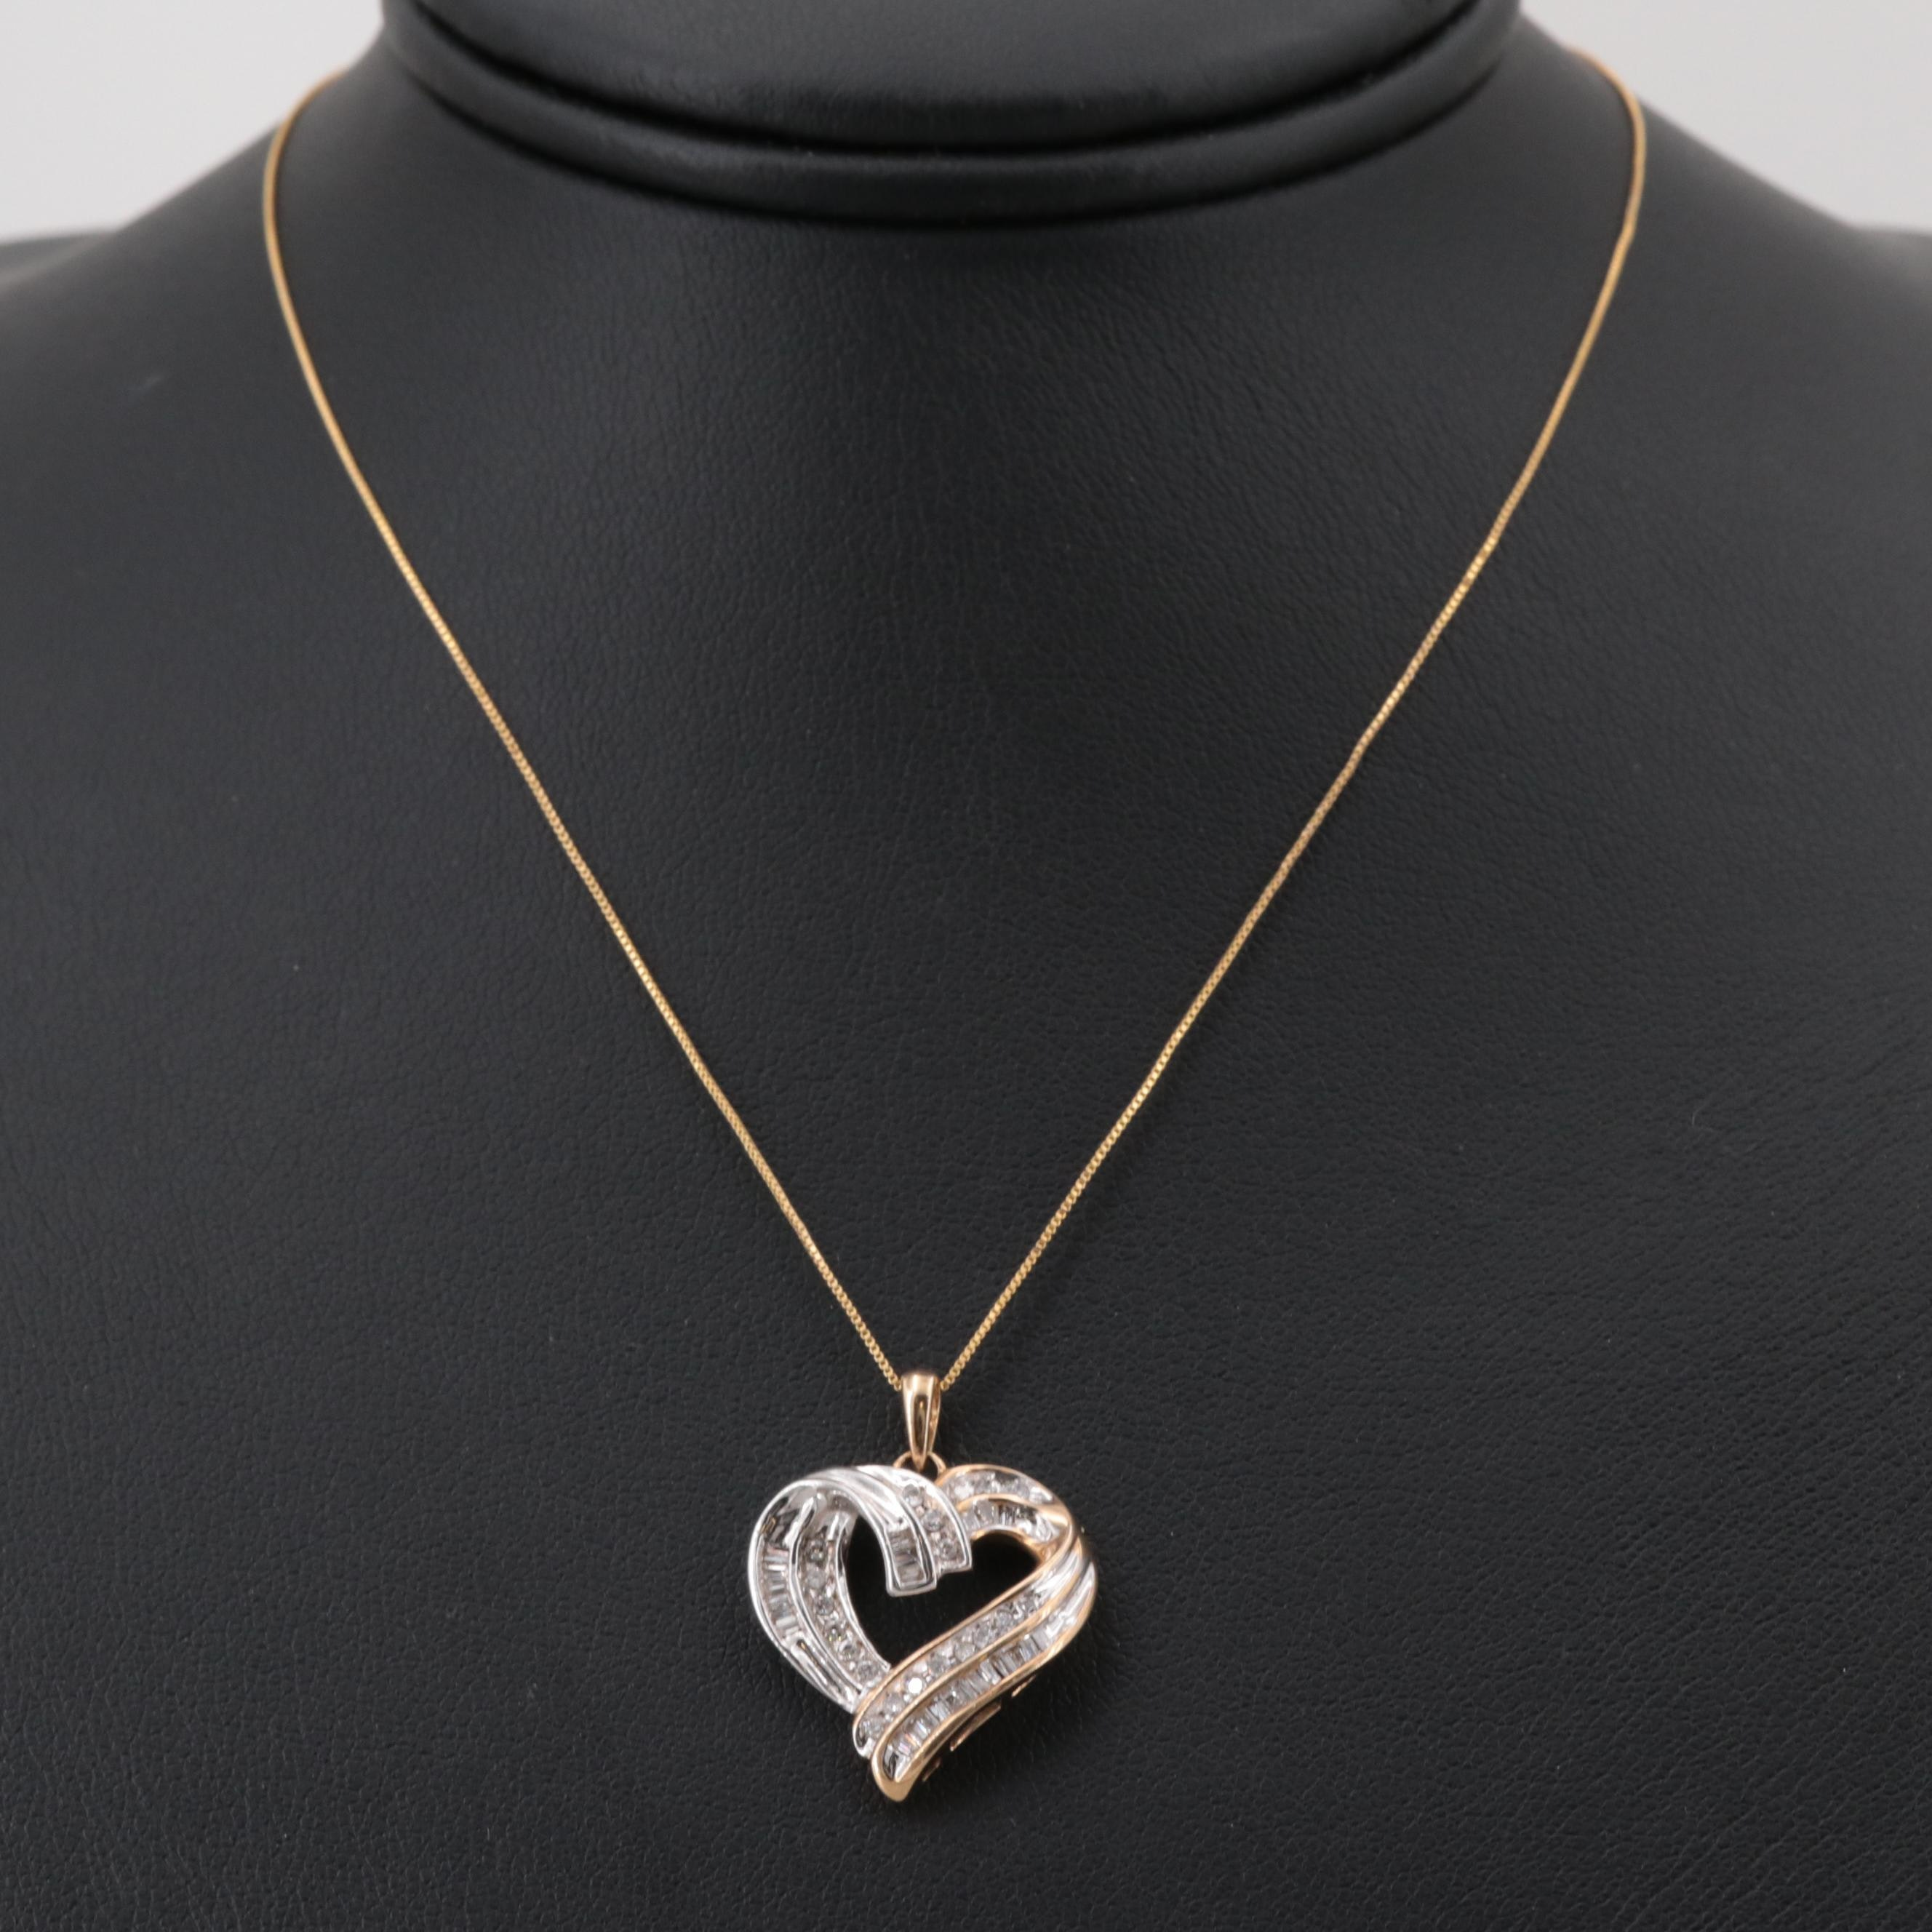 10K Yellow and White Gold Diamond Heart Pendant Necklace